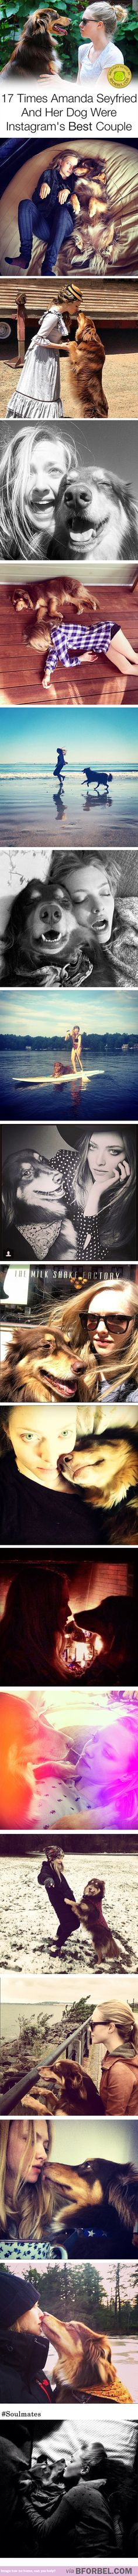 17 Times Amanda Seyfried And Her Dog Were Instagram's Best Couple…